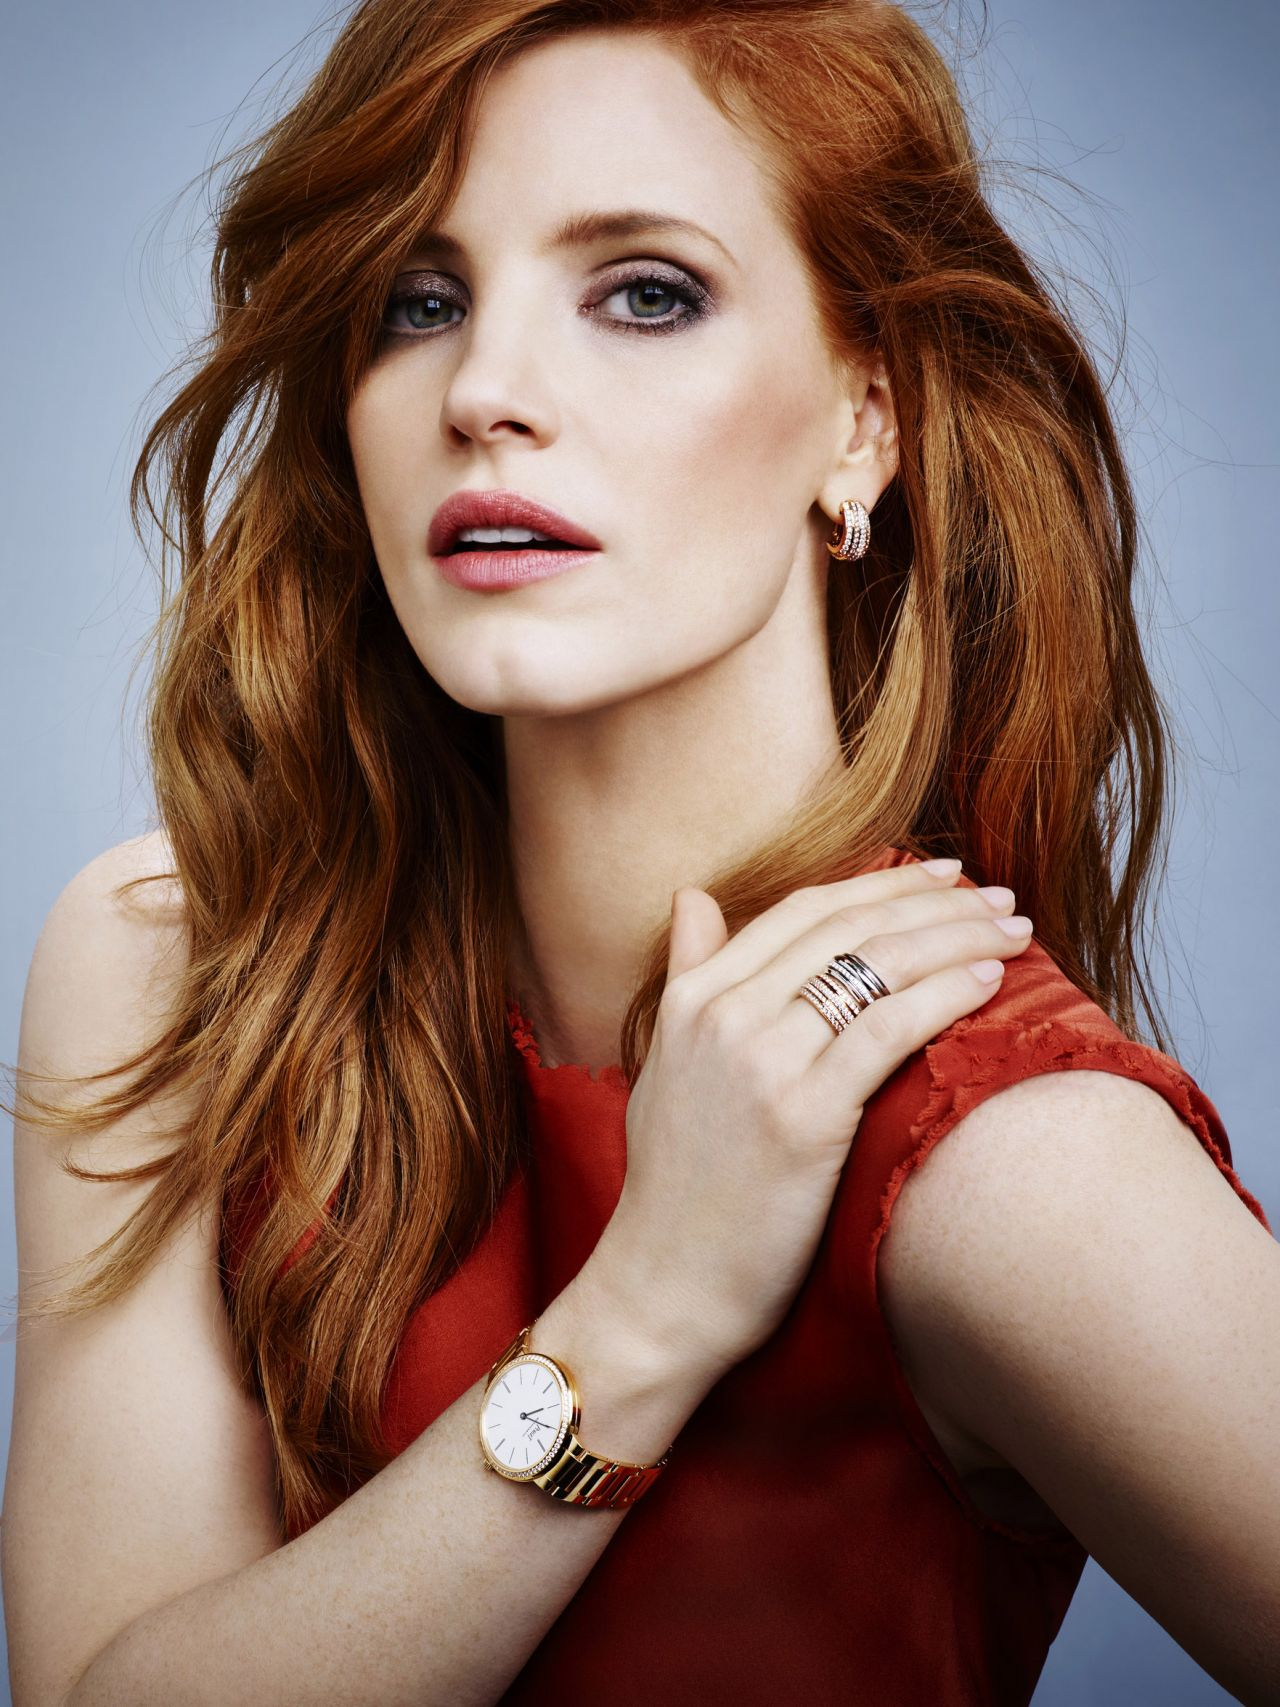 Jessica Chastain - Piaget Jewerly 2015 Ad Campaign Jessica Chastain